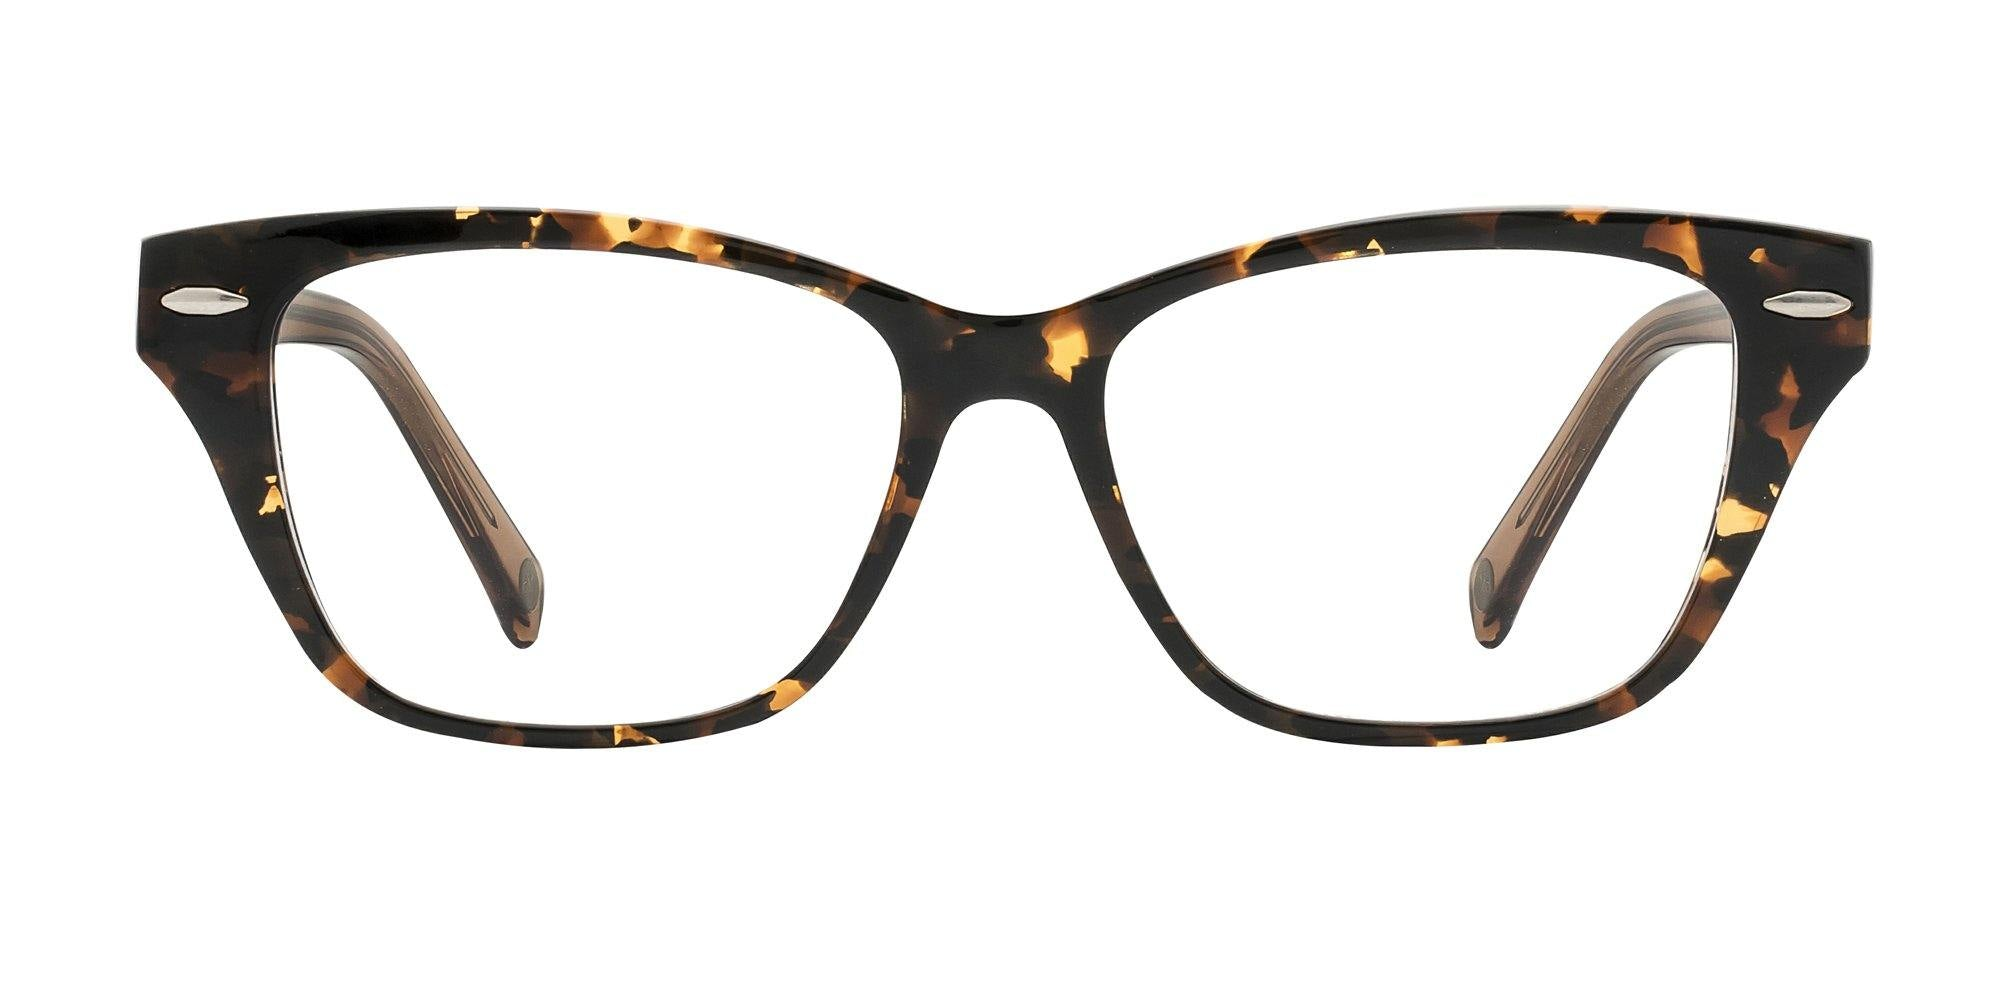 NOELLE - Willow Mae Eyewear